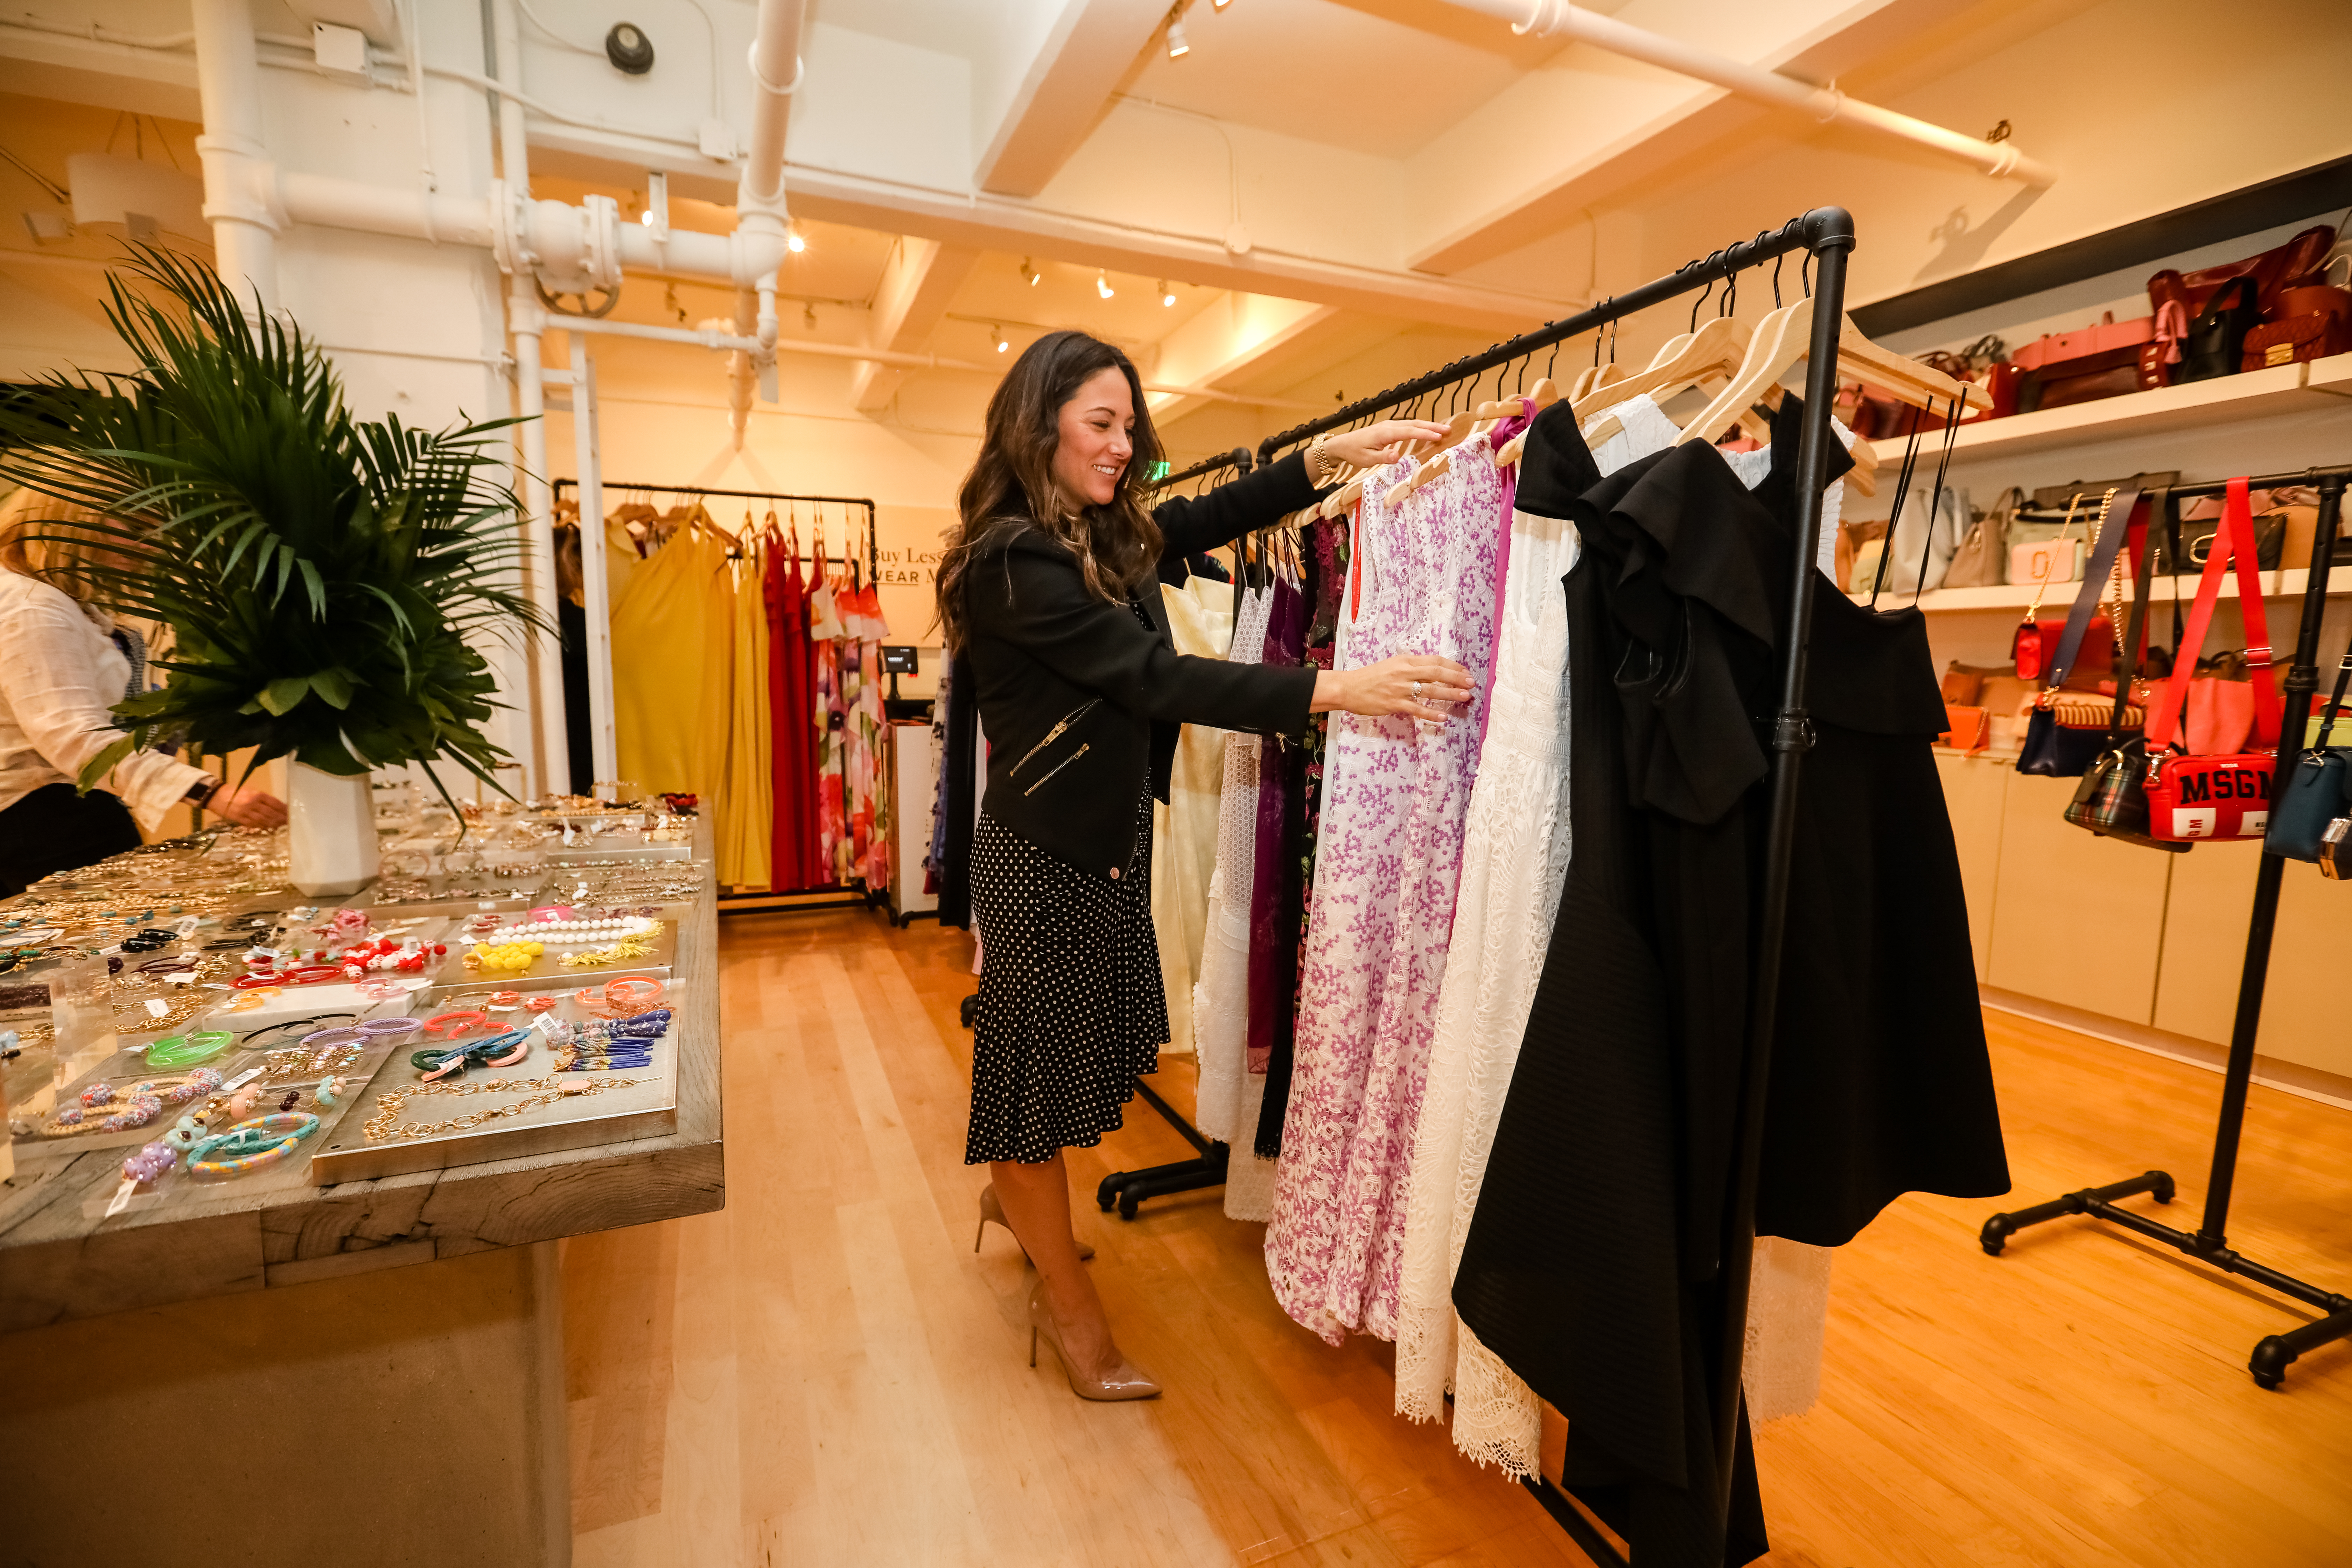 Rent the Runway Chief Operating Officer Maureen Sullivan looks through a rack of dresses inside Rent the Runway's San Francisco store.